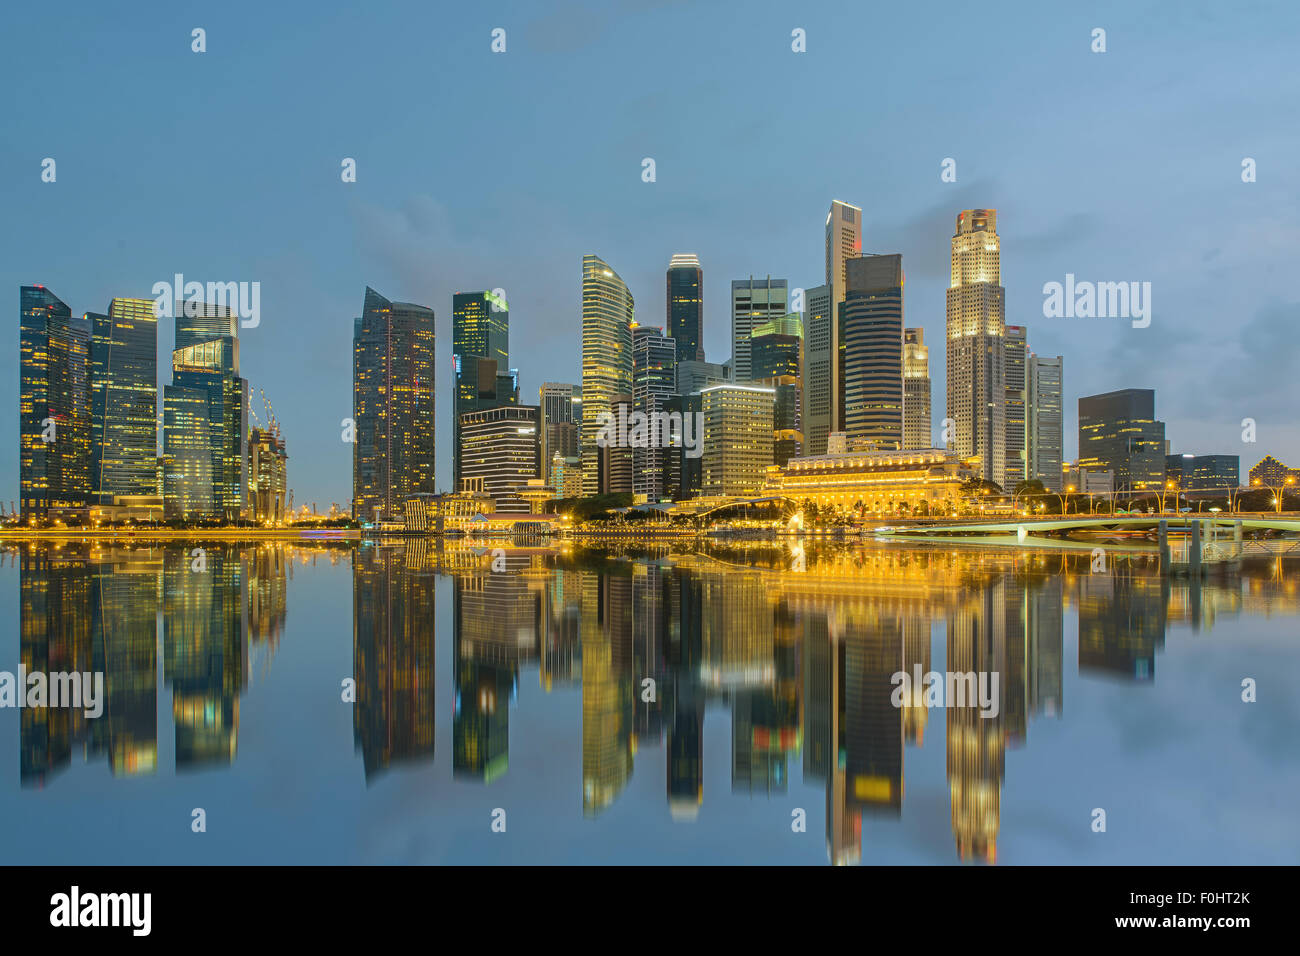 Singapore city skyline at night Photo Stock